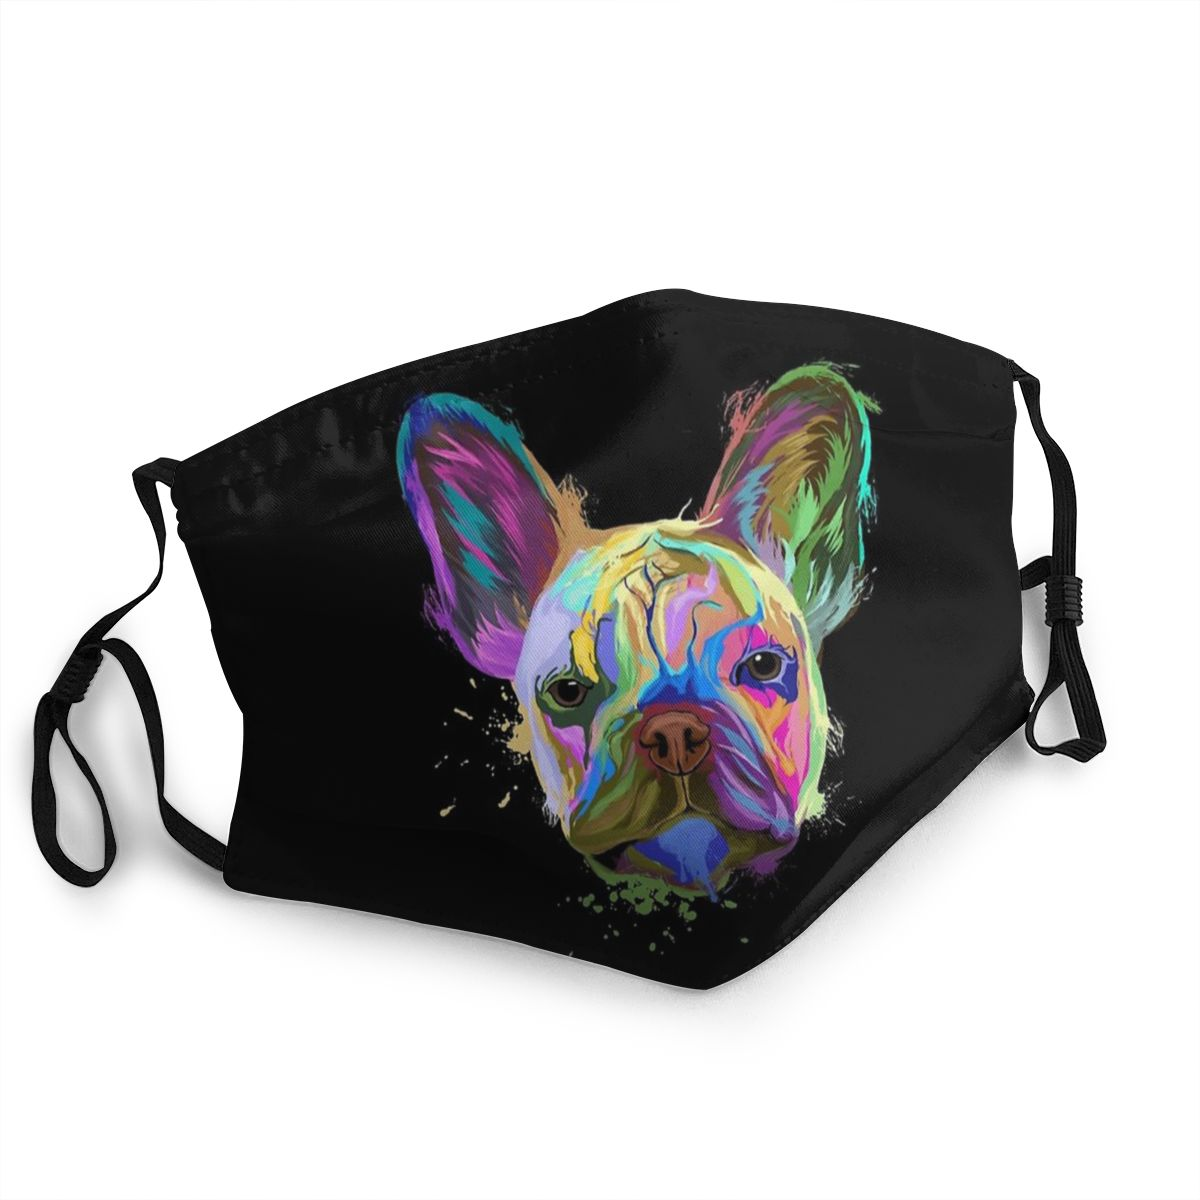 French Bulldog Adult Reusable Face Mask Dog Animal Pet Puppy Anti Haze Dustproof Protection Cover Respirator